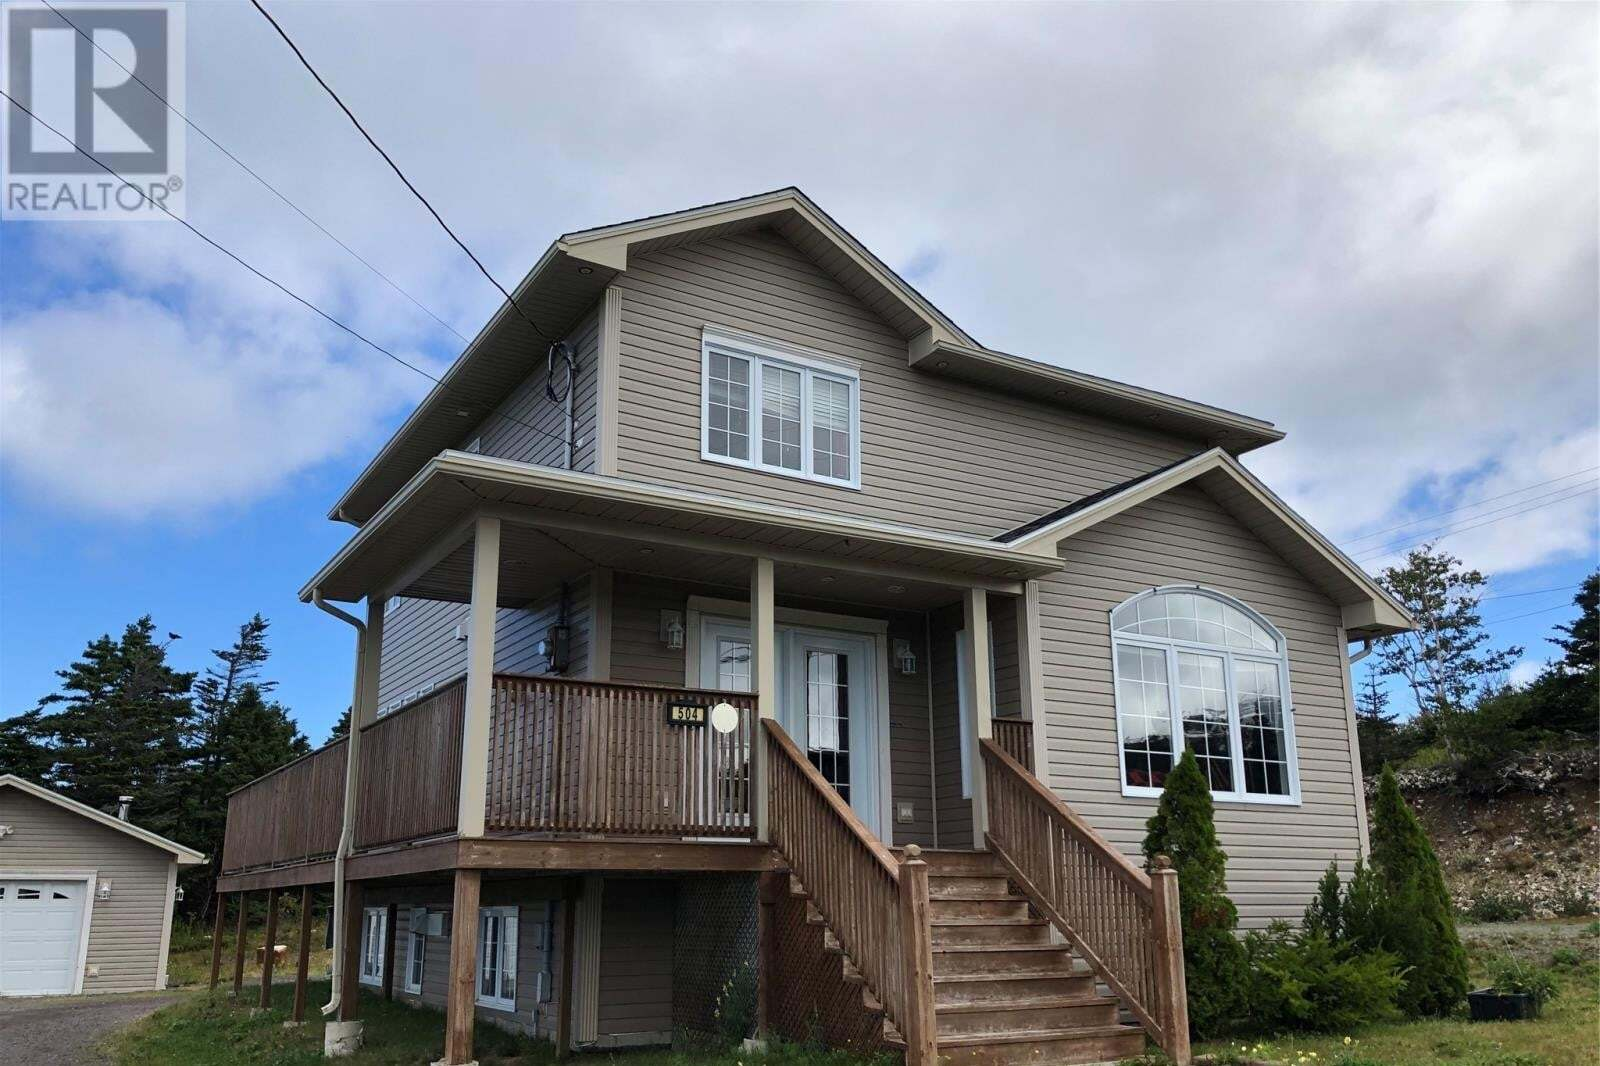 House for sale at 504 Main Rd Pouch Cove Newfoundland - MLS: 1221185